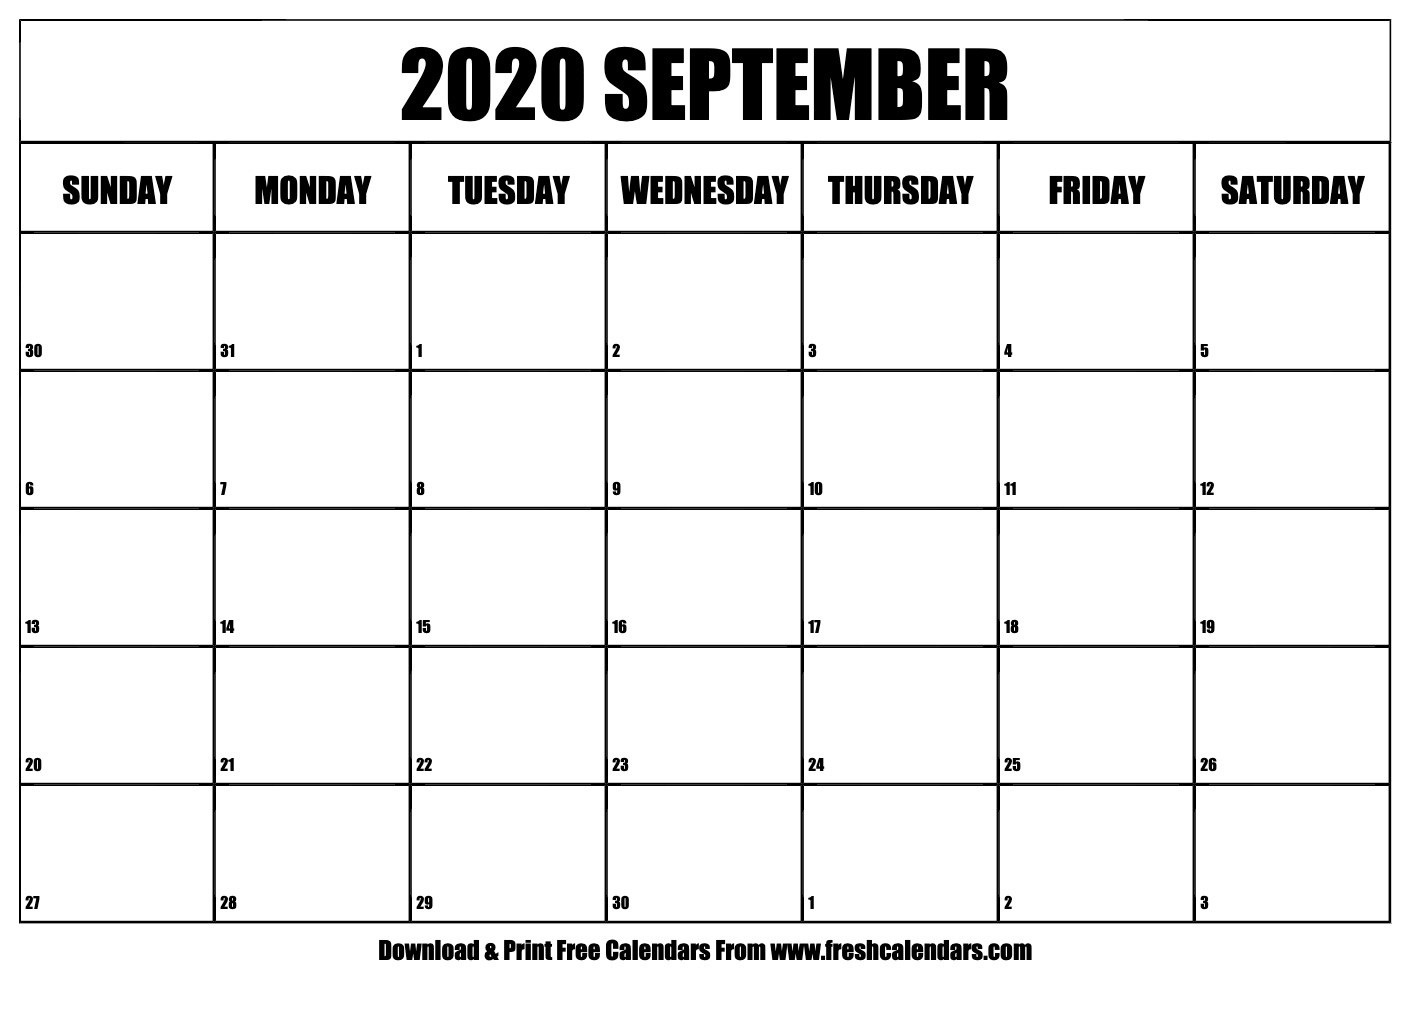 September 2020 Calendar Printable - Fresh Calendars_A Blank Calendar For September 2020